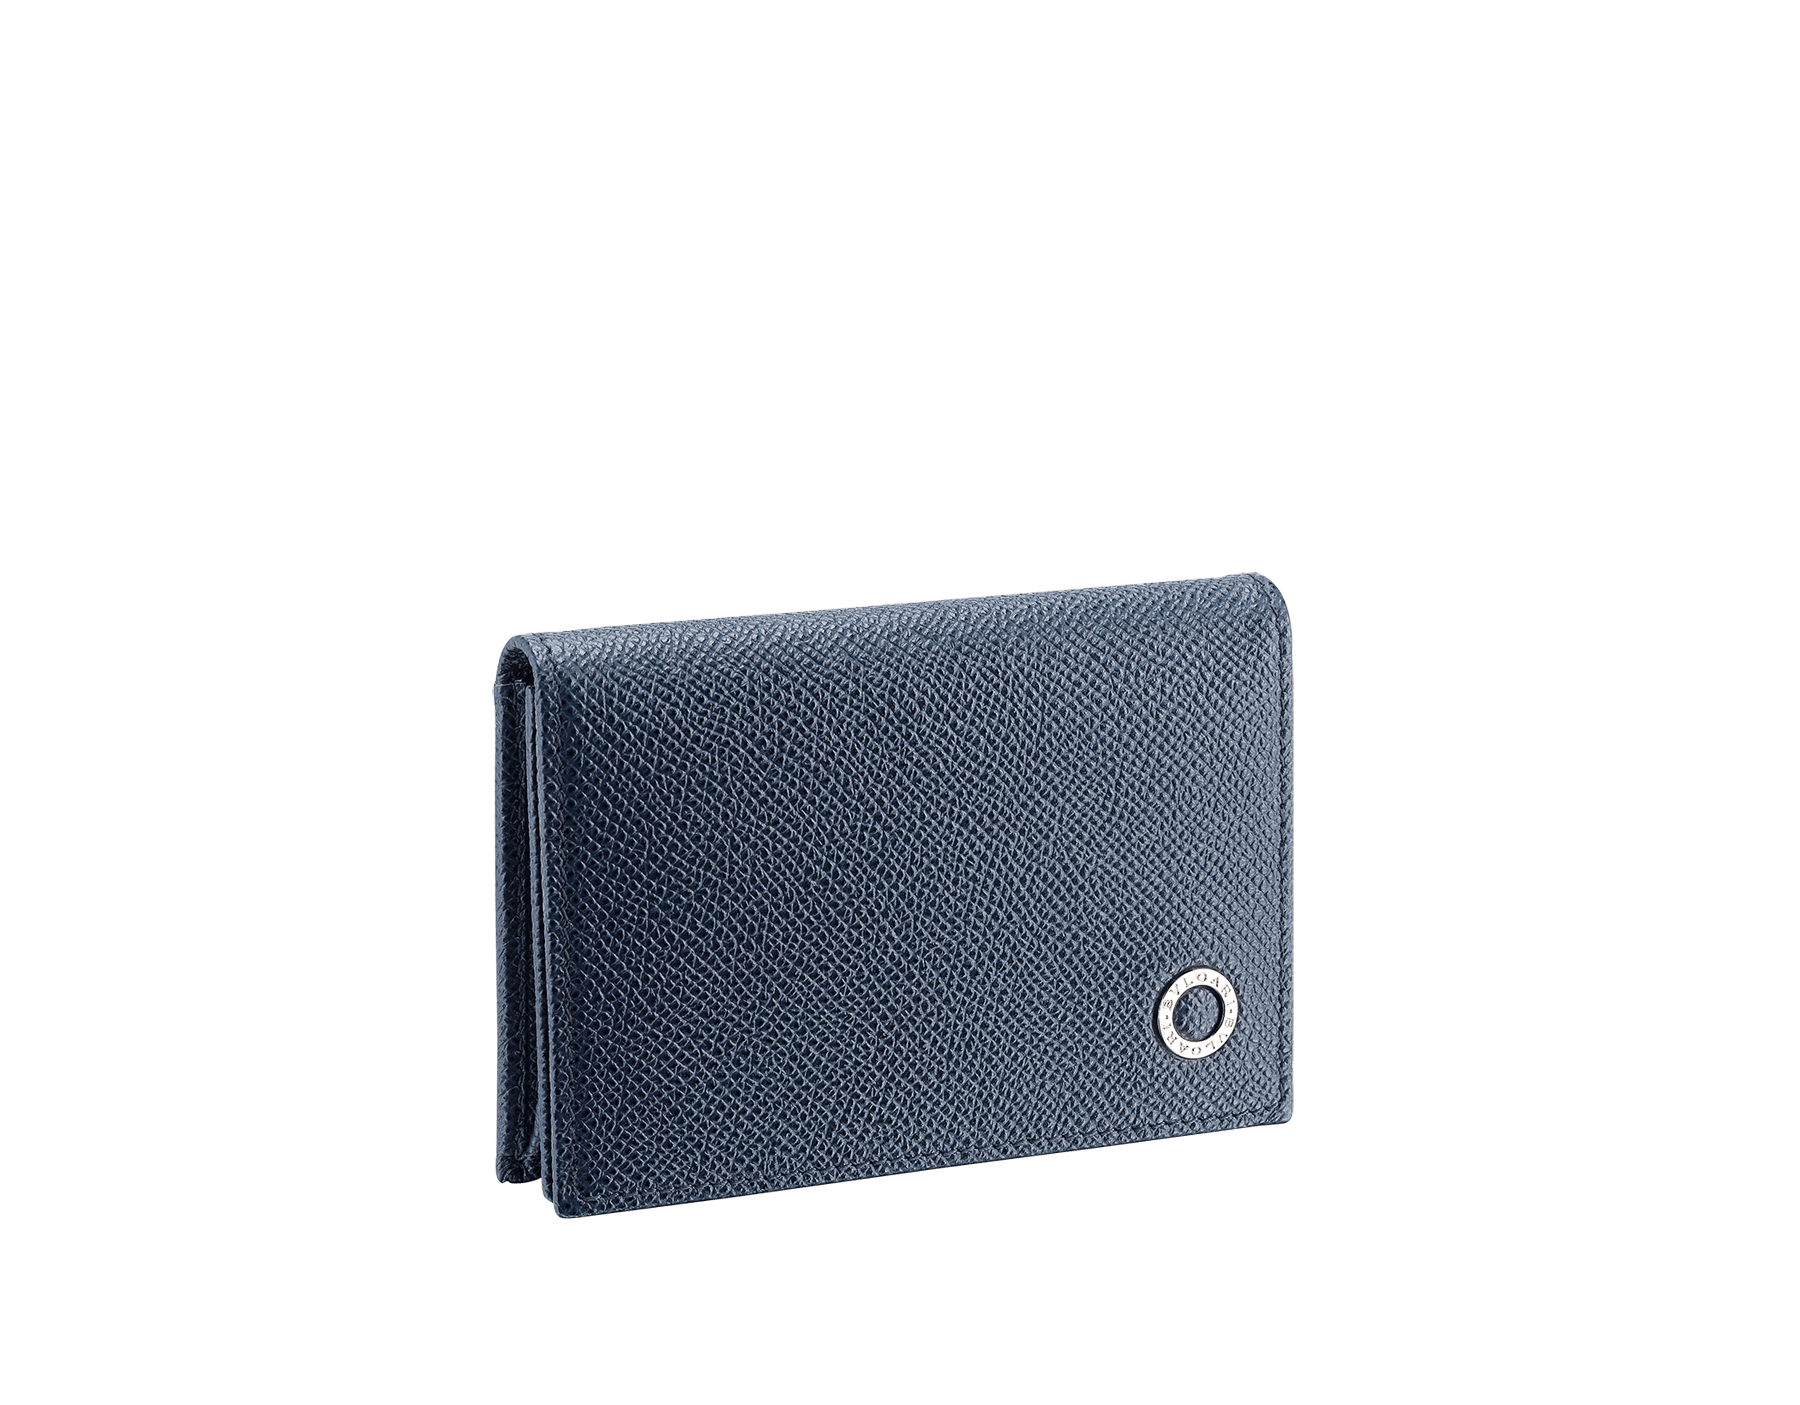 """BVLGARI BVLGARI"" business card holder in capri turquoise and royal sapphire grain calf leather, with brass palladium plated logo décor. BBM-BC-HOLD-SIMPLEb image 1"